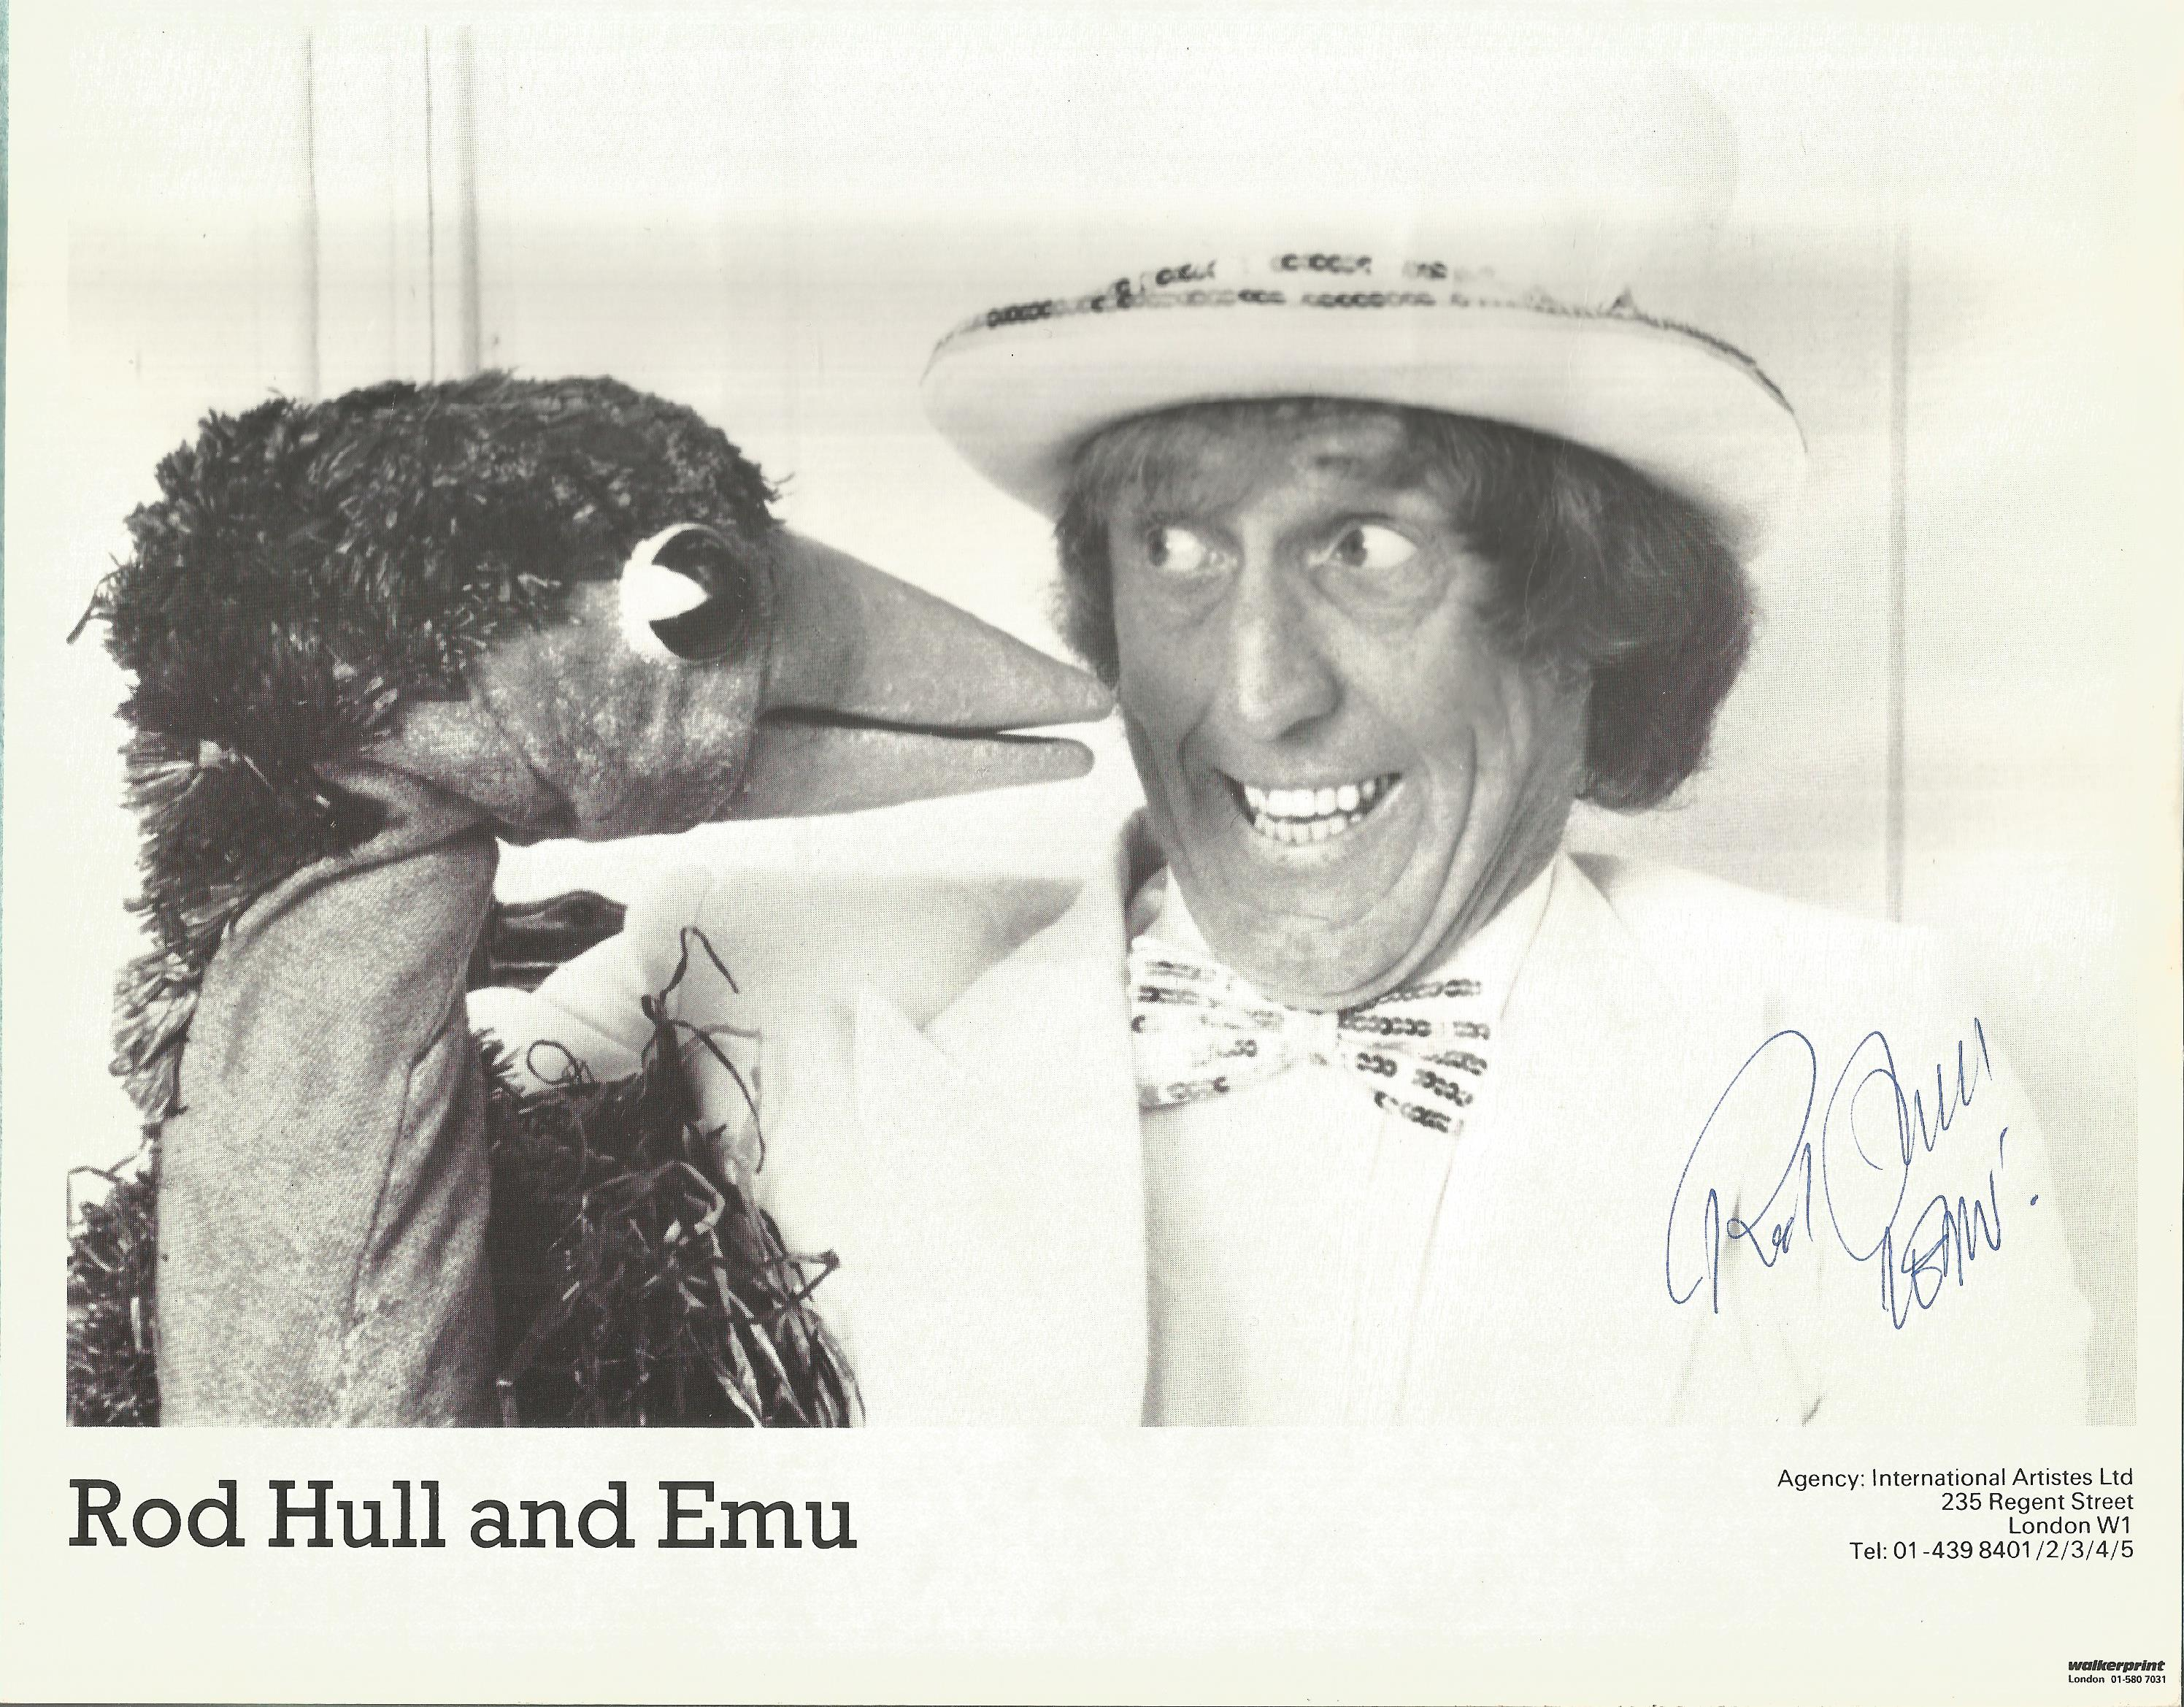 Rod Hull signed 10x8 black and white photo. Rodney Stephen Hull (13 August 1935 - 17 March 1999) was